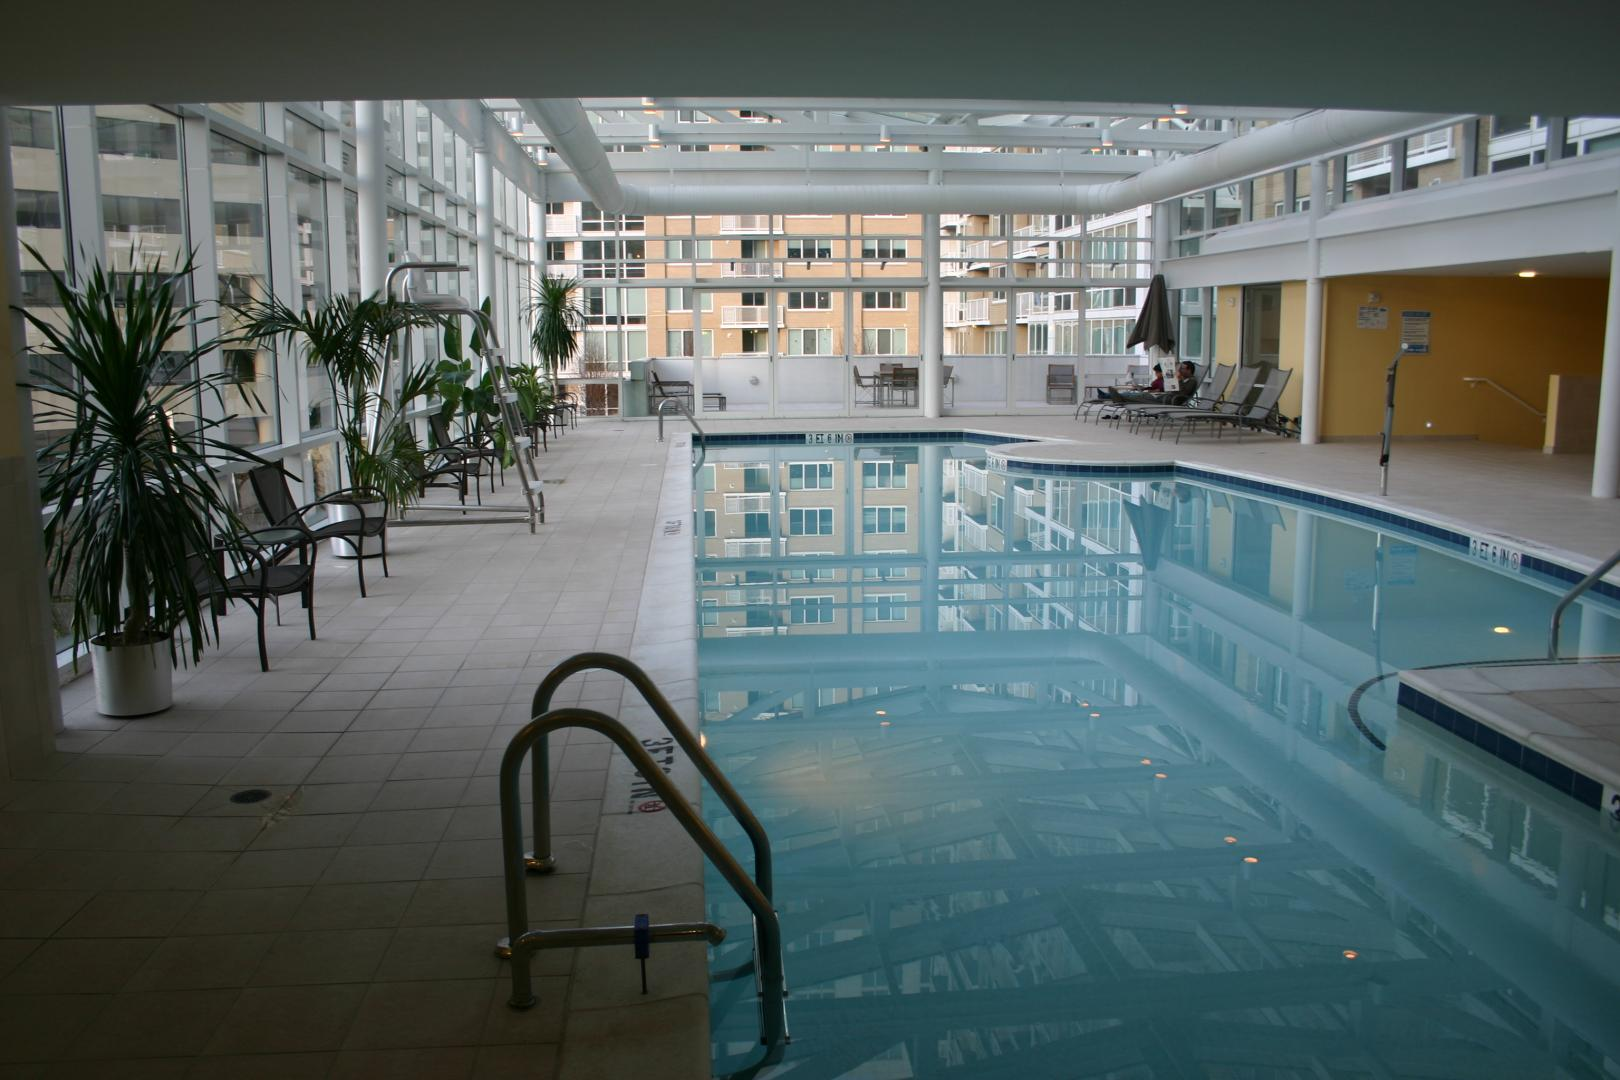 Don't be left out in the cold this winter. Make a reservation with us this fall through the winter and you'll find some serious savings. Call today to find out how you can be swimming in savings and in a pool this winter.